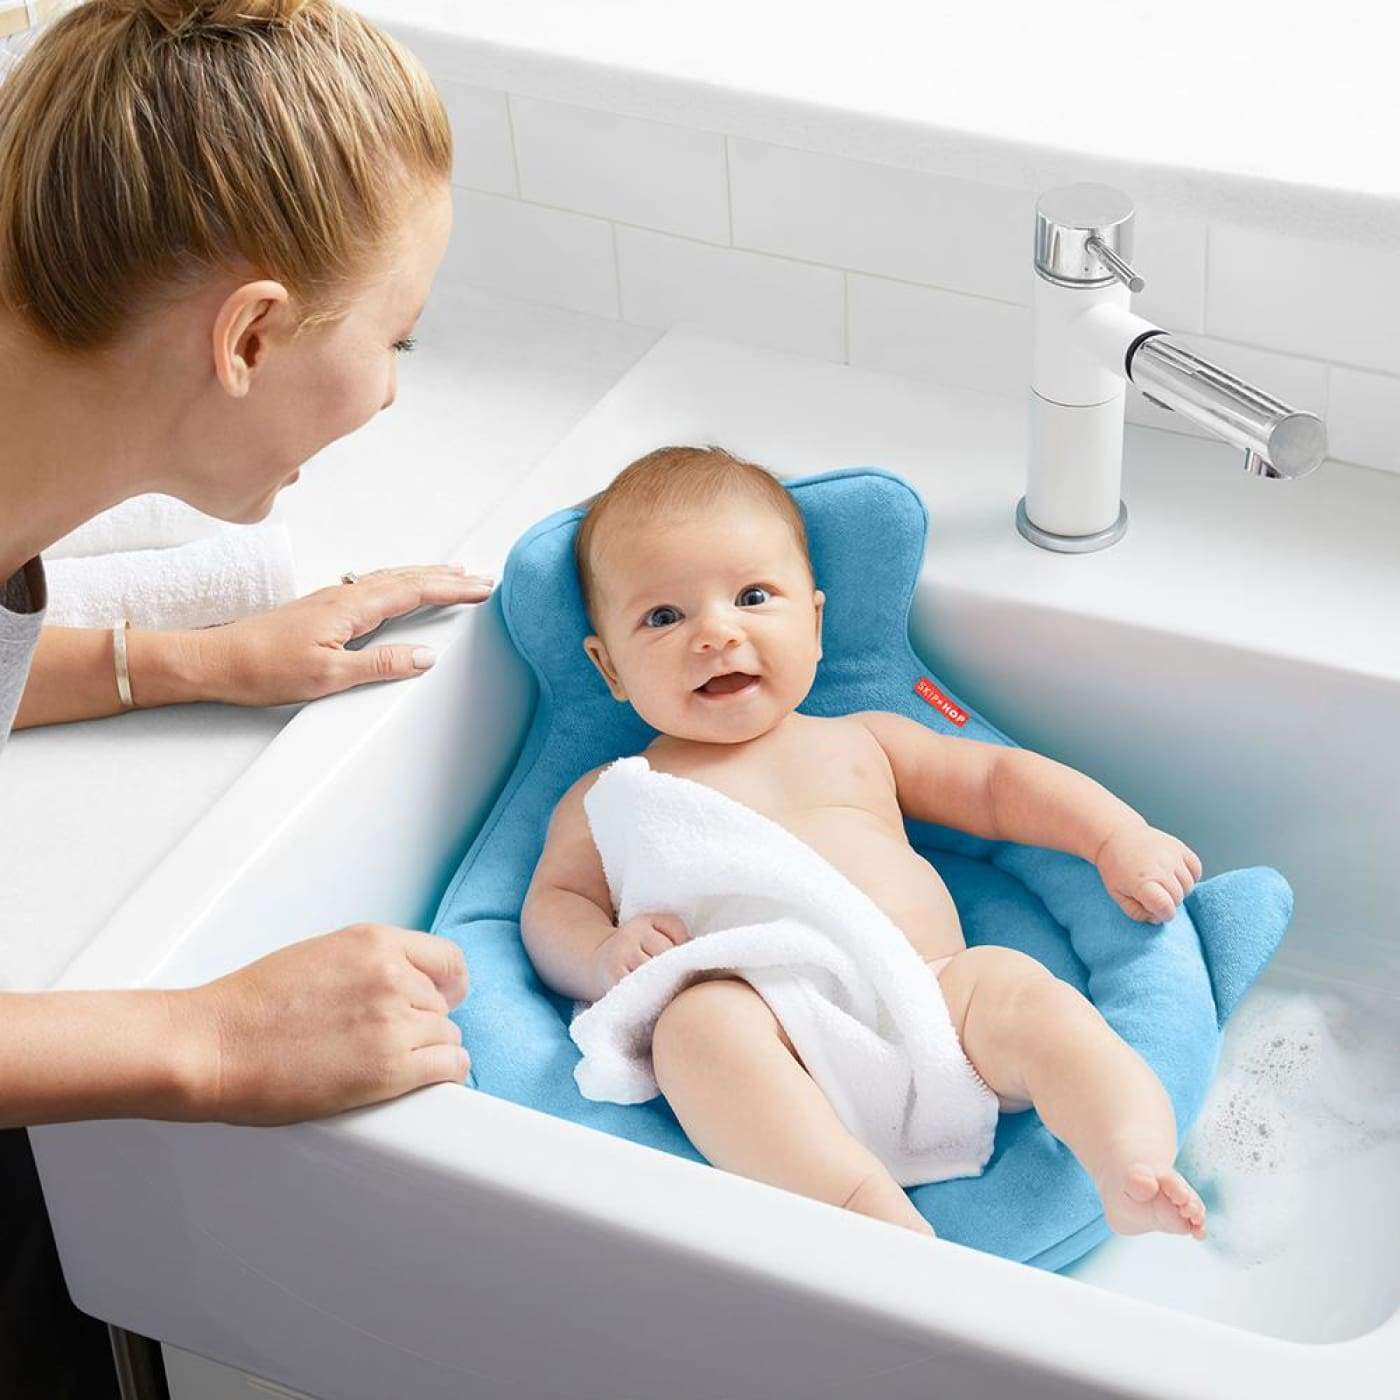 Skip Hop Moby SoftSpot Sink Bather - BATHTIME & CHANGING - BATH TOYS/AIDS